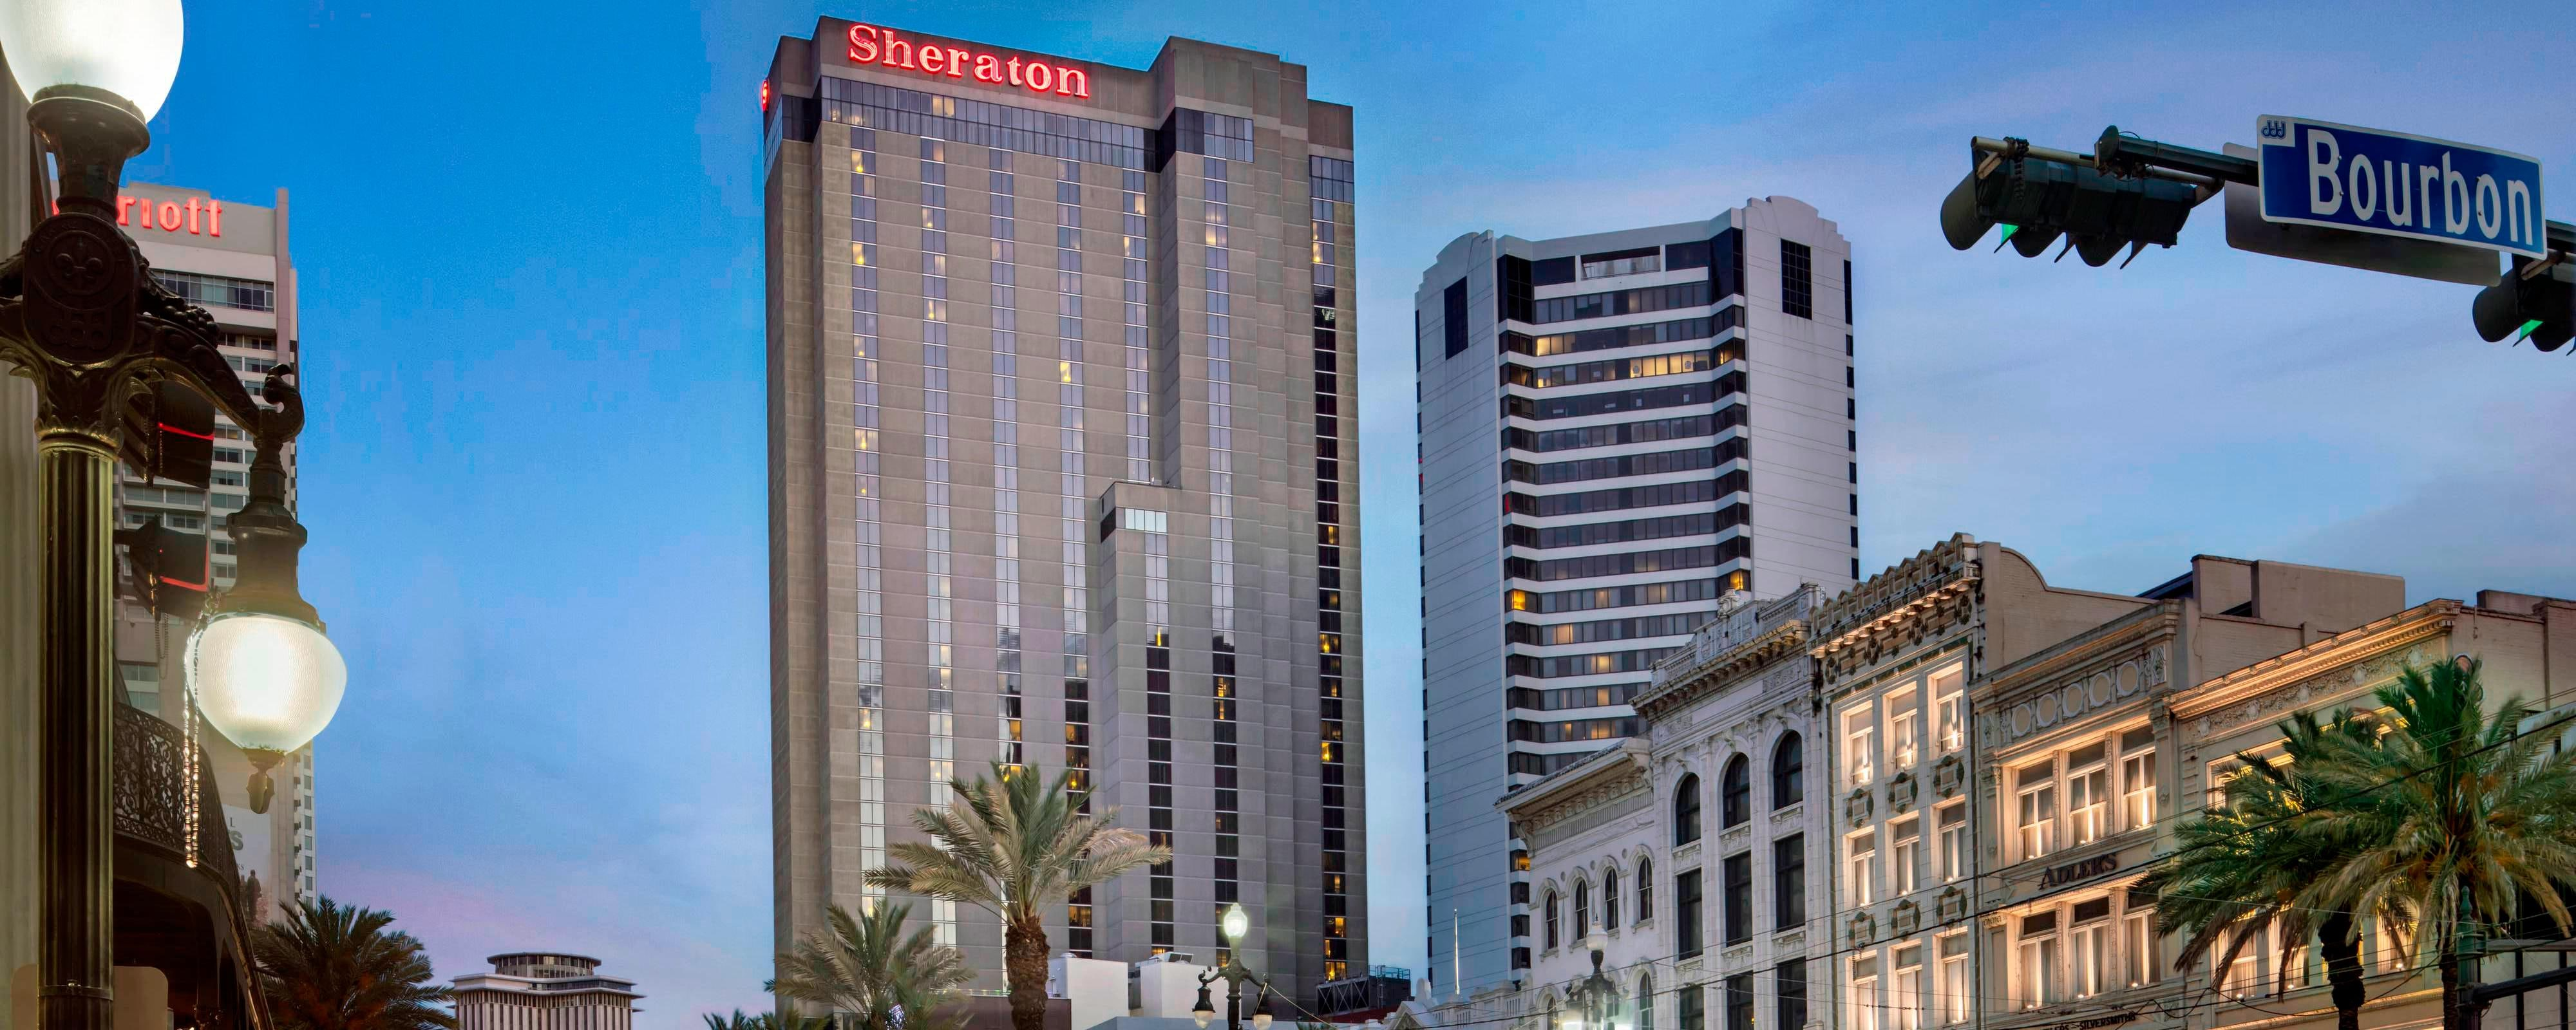 New Orleans Hotels >> New Orleans French Quarter Hotel Sheraton New Orleans Hotel